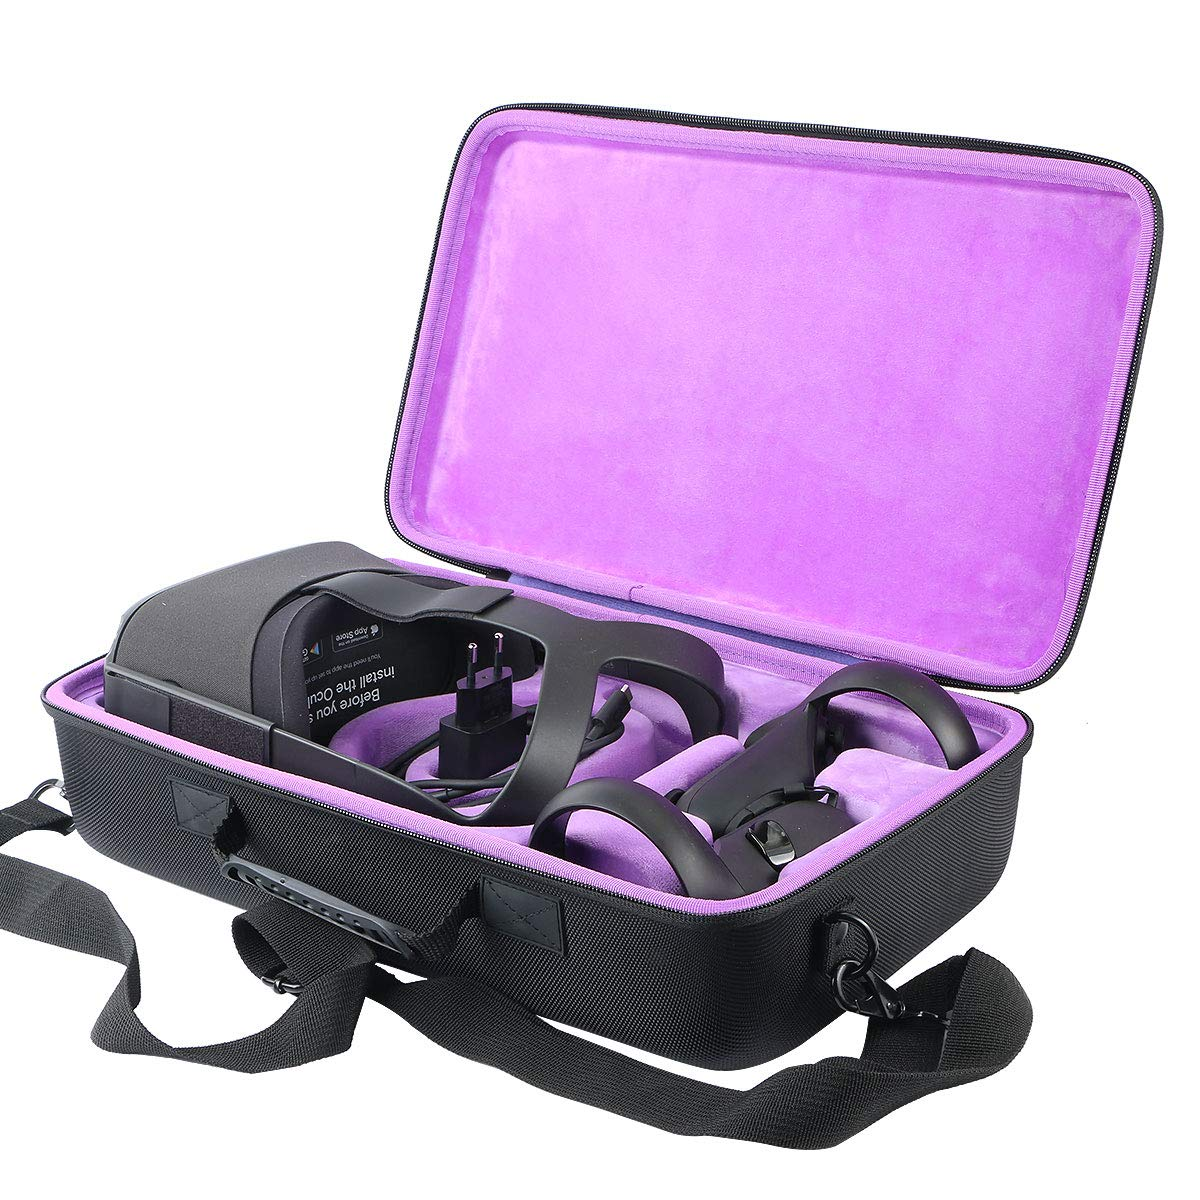 Khanka Hard Travel Case Replacement for Oculus Quest All-in-one VR Gaming Headset by khanka